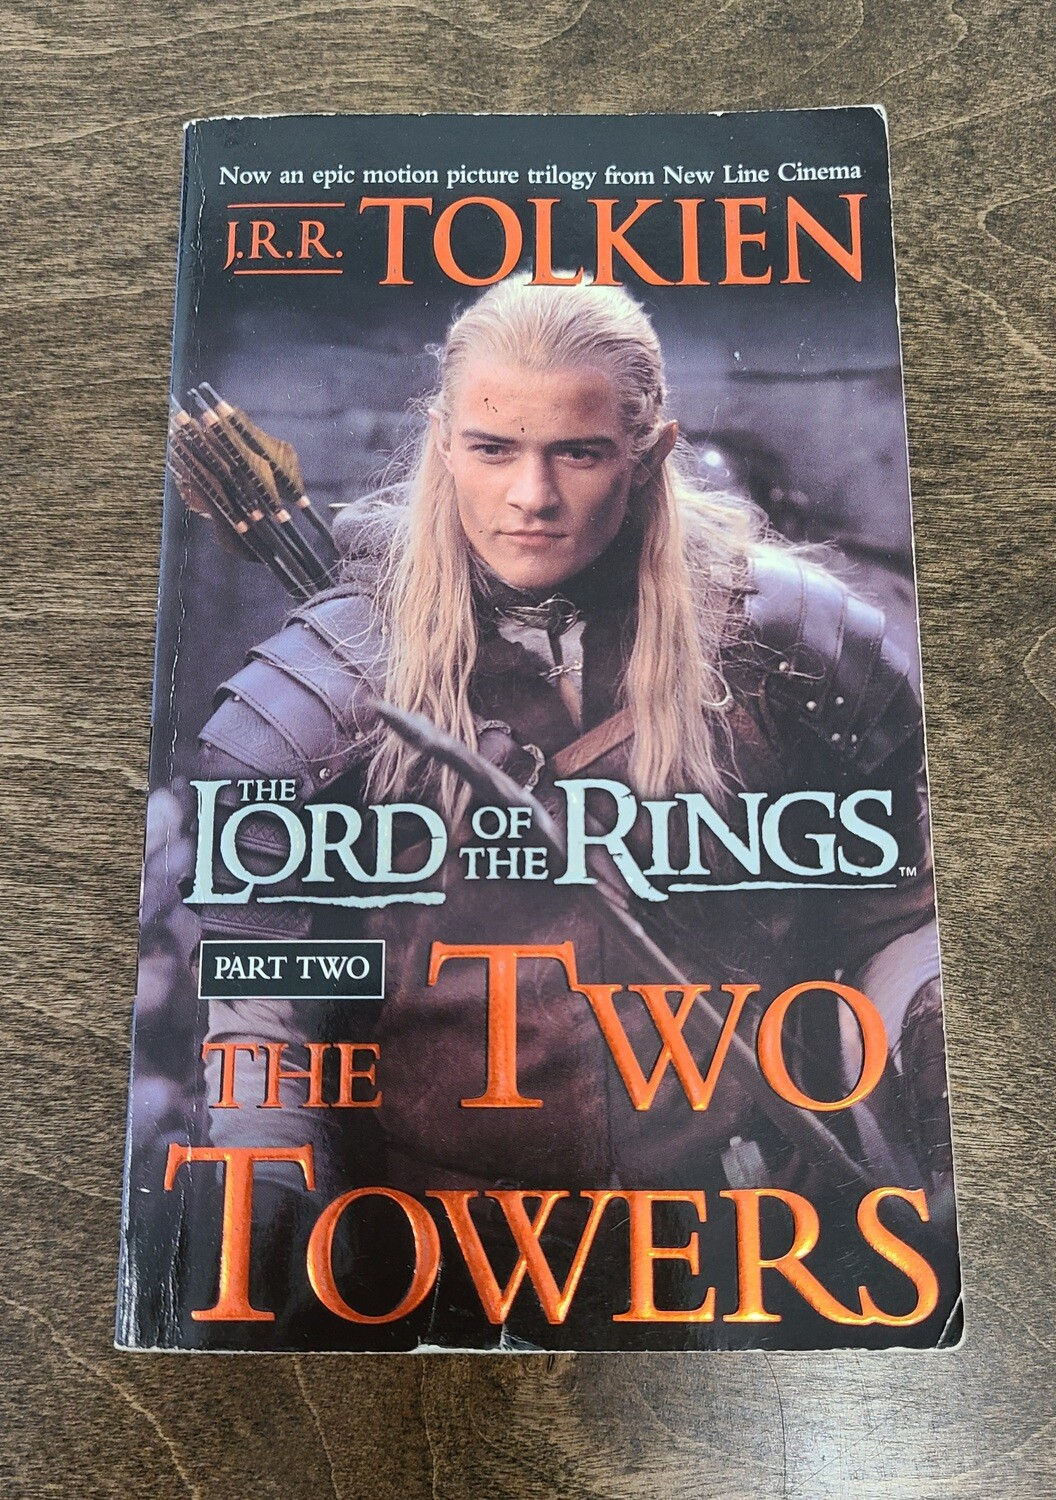 The Lord of the Rings: The Two Towers by J.R.R. Tolkien